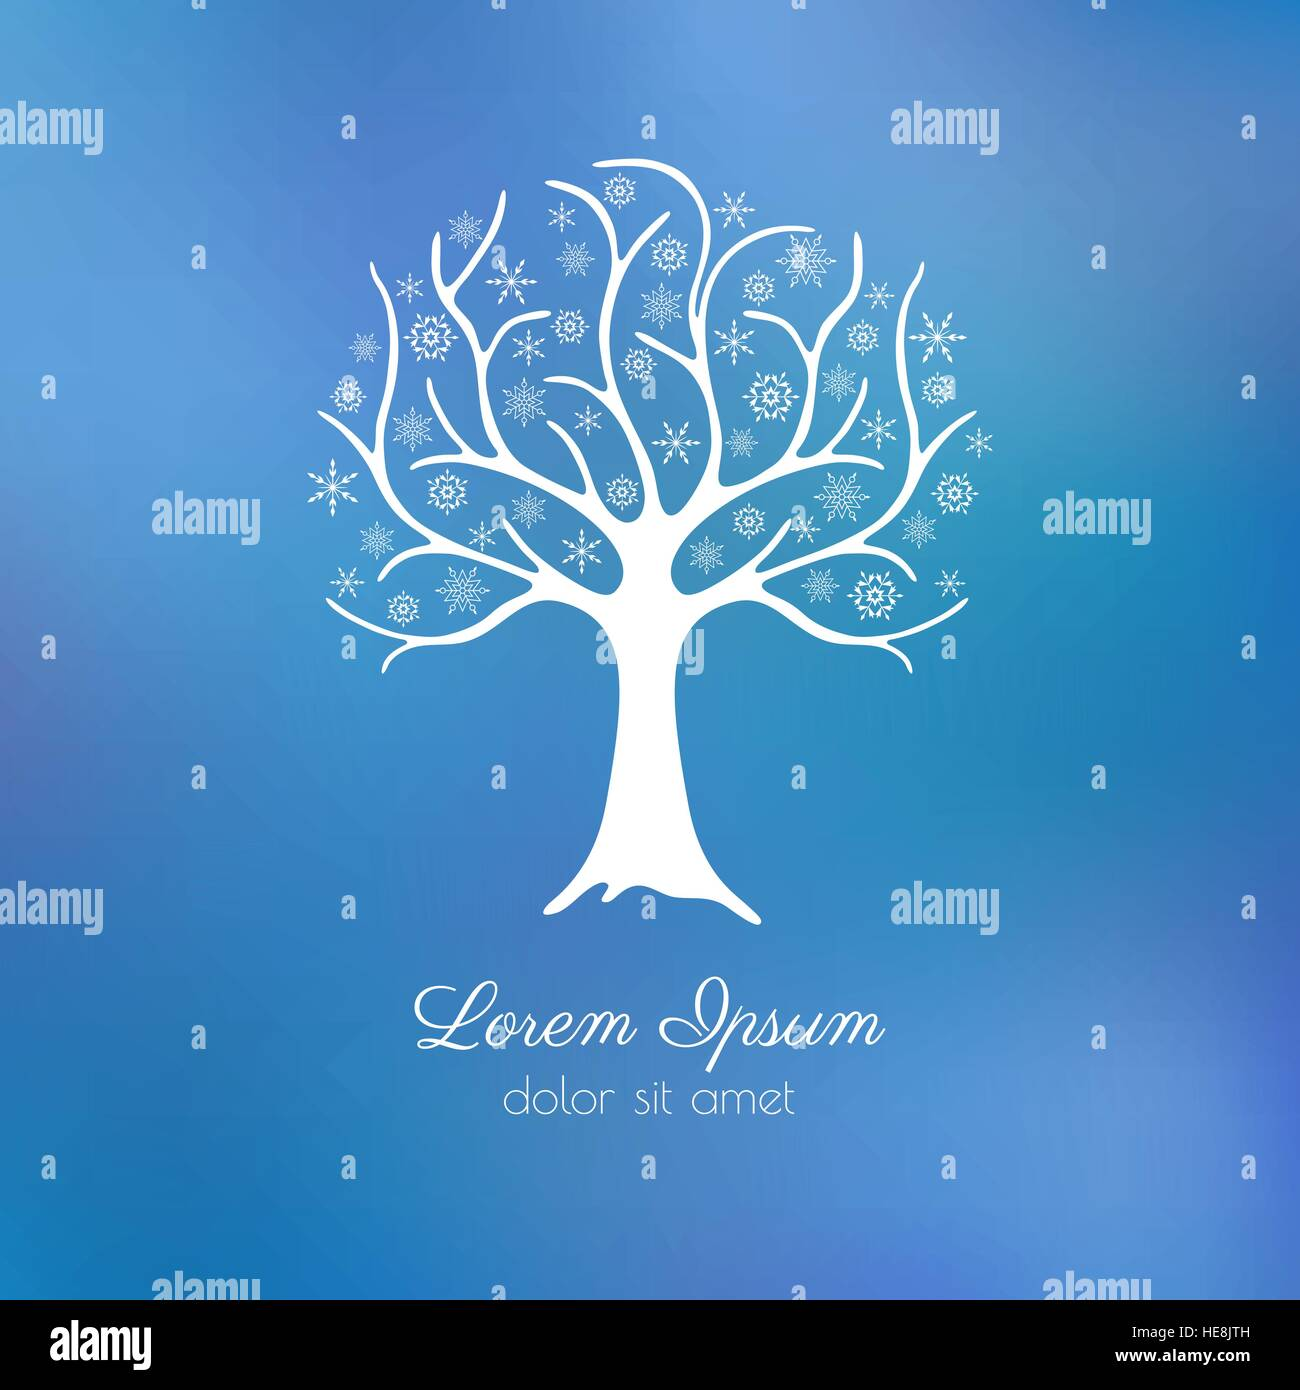 Elegant winter tree with snowflakes instead of leaves. Seasonal design template over a blurred background, eps10. - Stock Vector